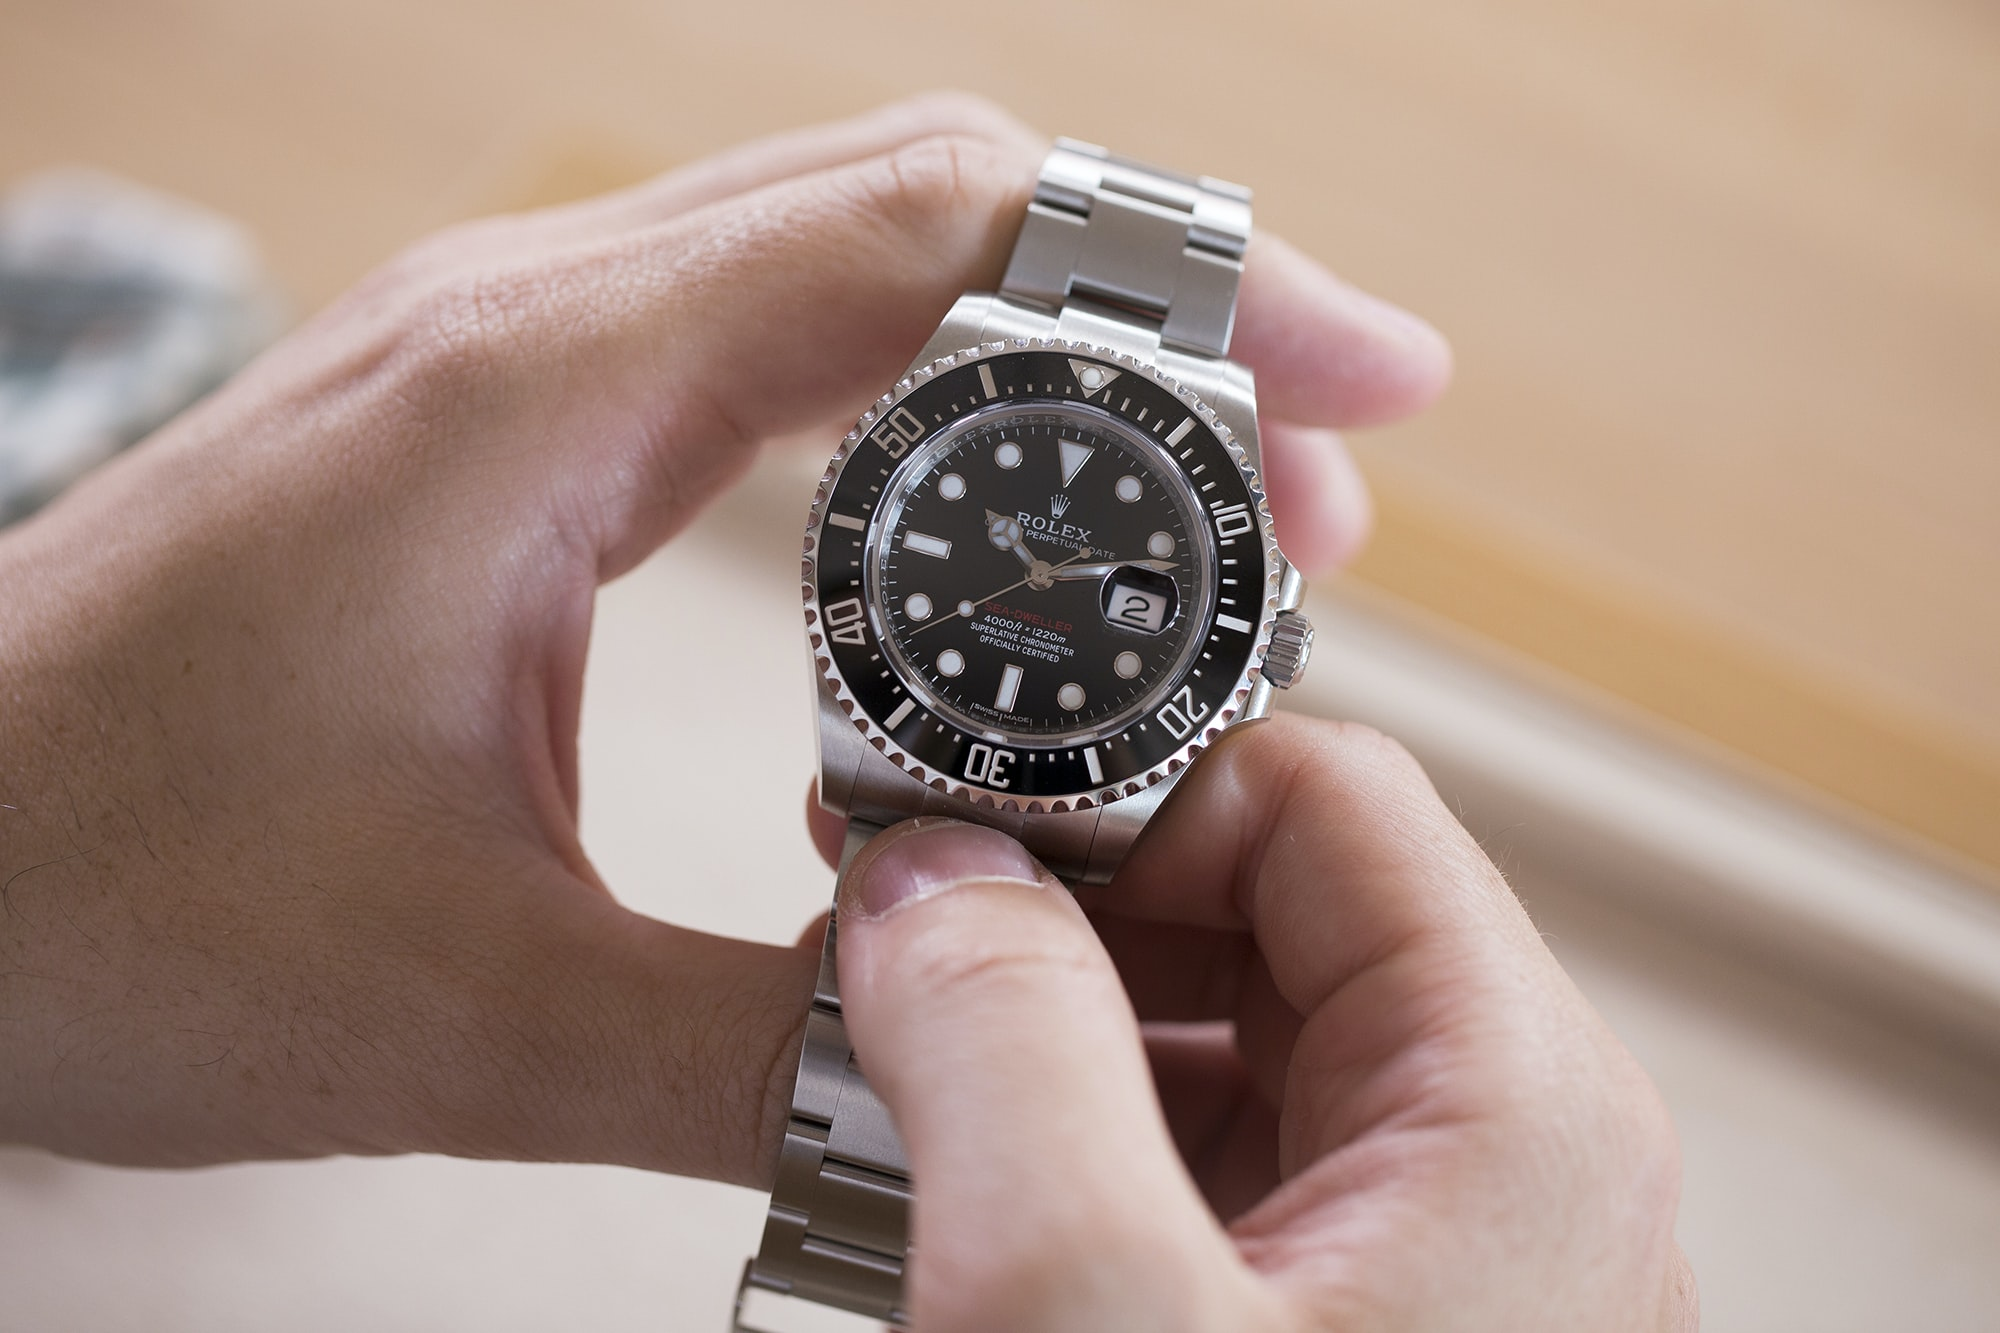 A Week On The Wrist: The Rolex Sea-Dweller Reference 126600 A Week On The Wrist: The Rolex Sea-Dweller Reference 126600  3H0A0239 copy